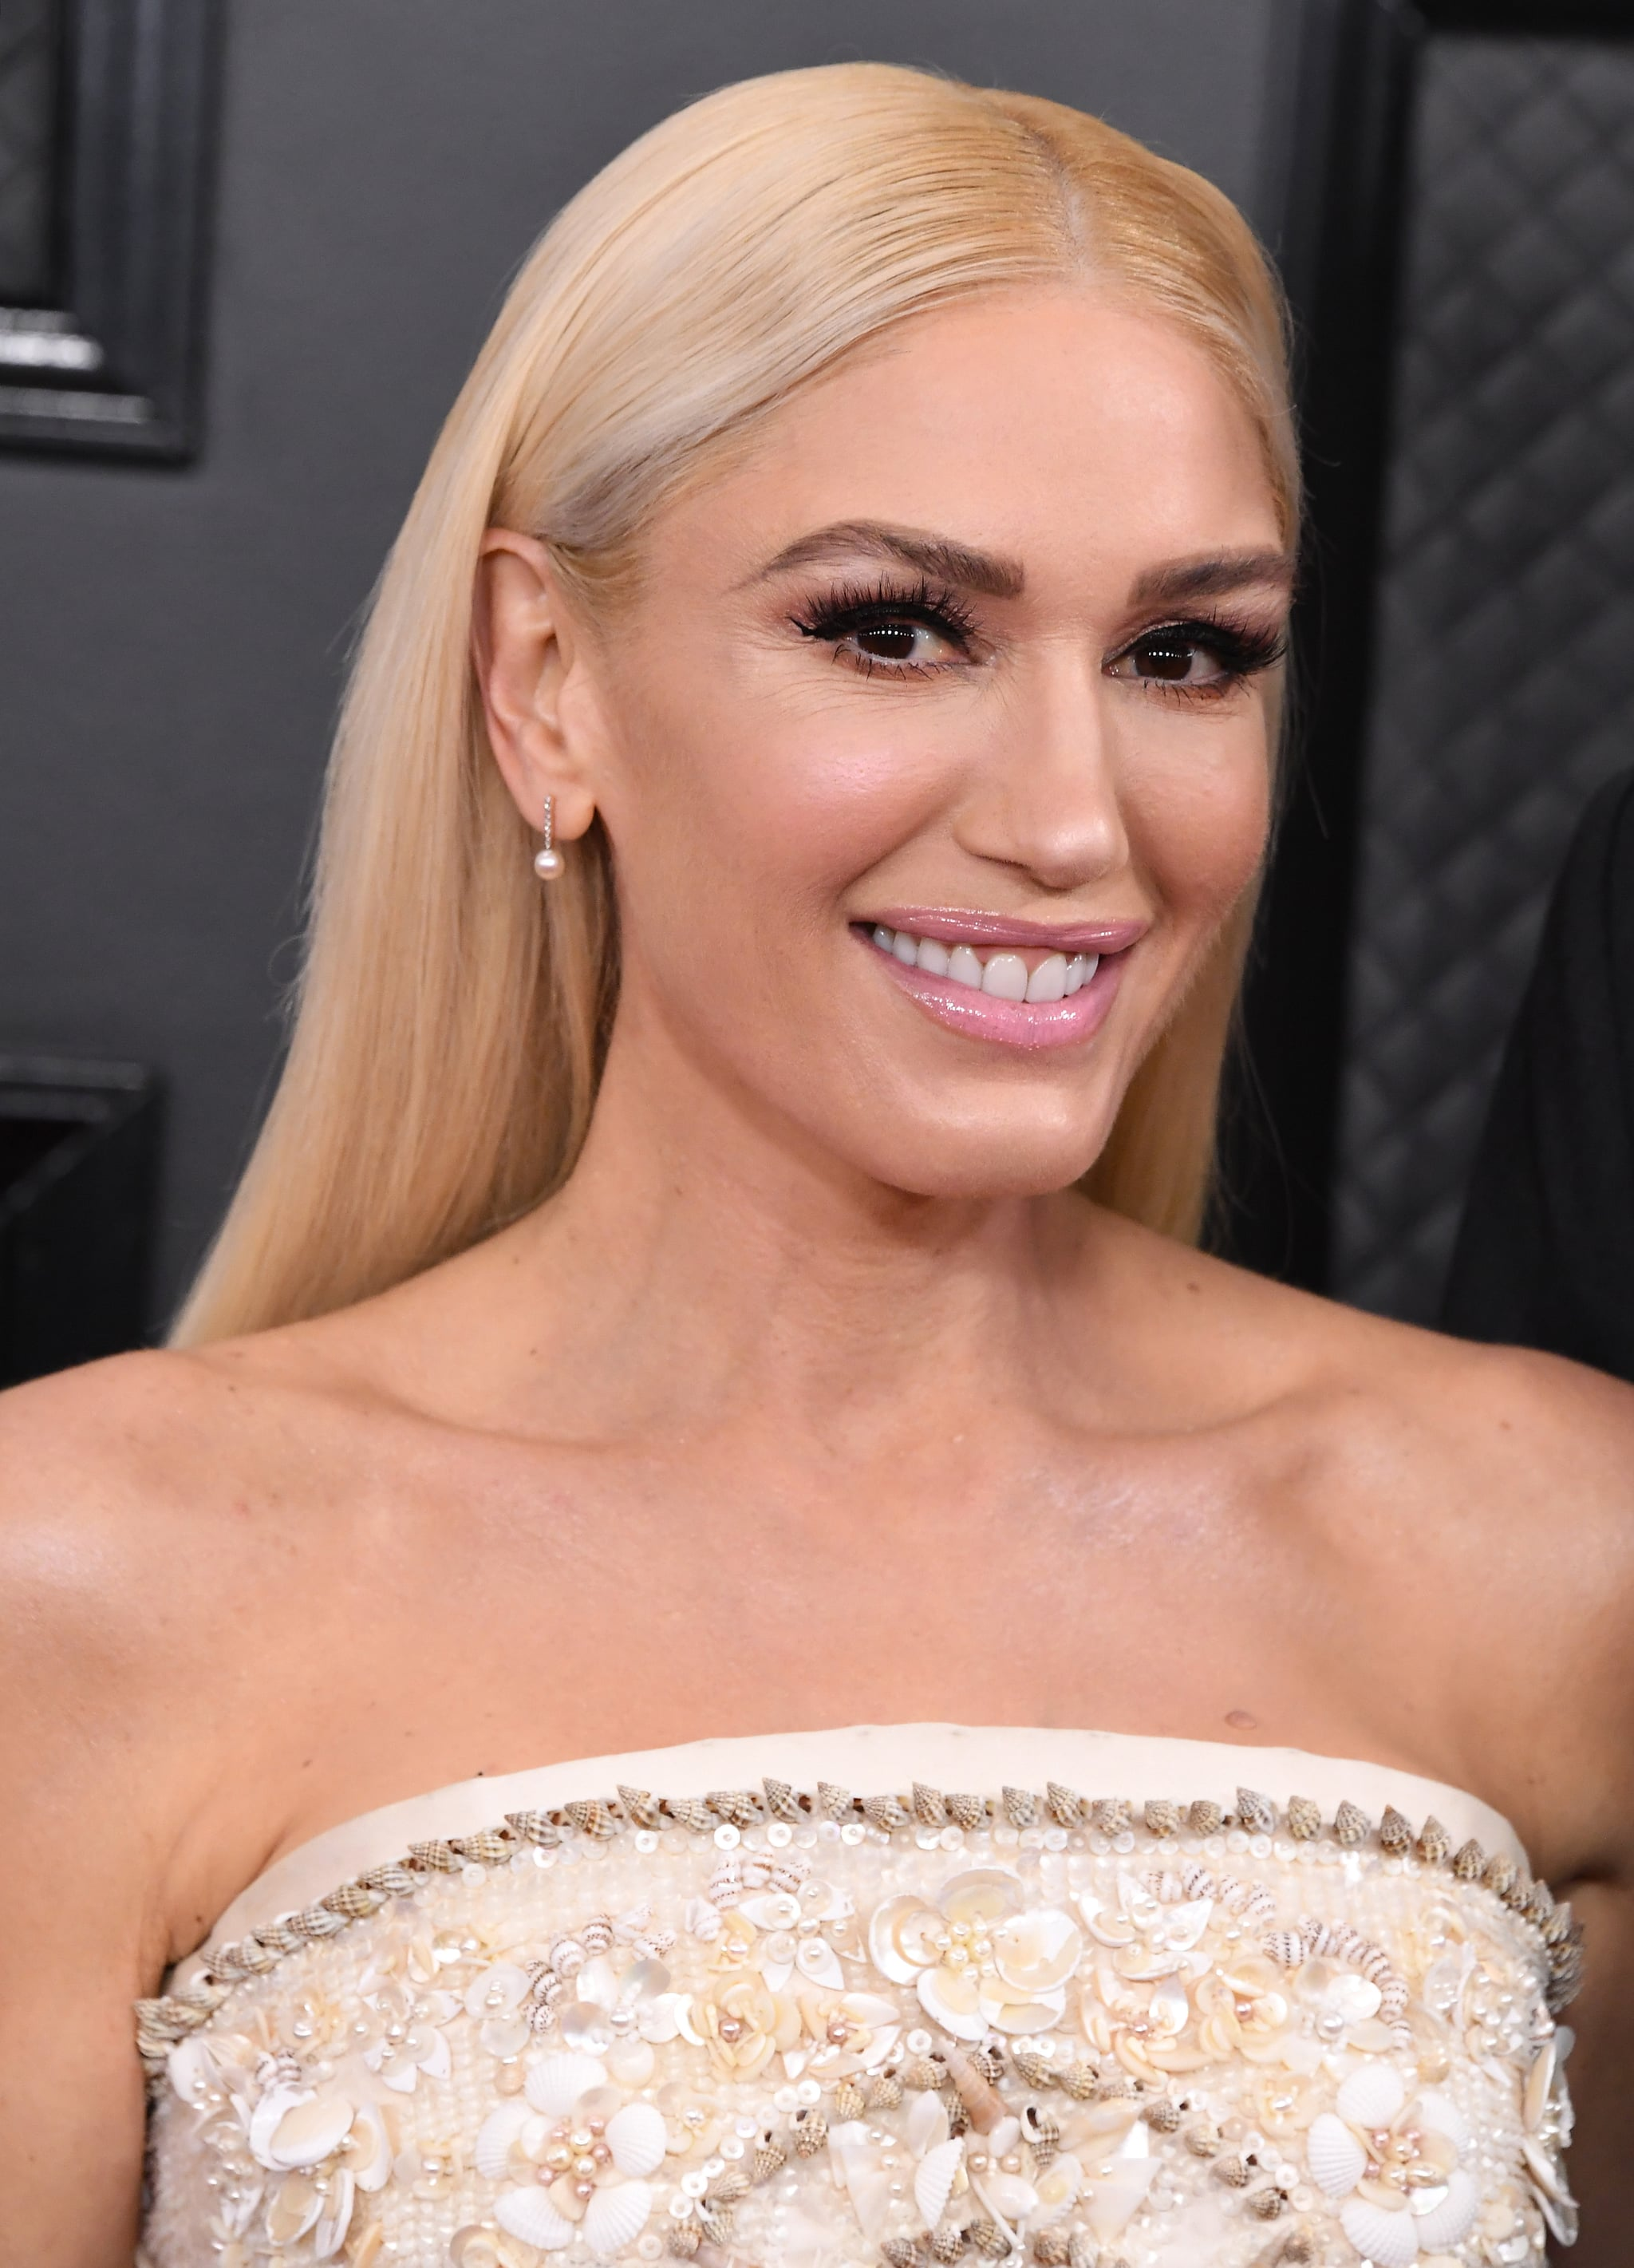 LOS ANGELES, CALIFORNIA - JANUARY 26: Gwen Stefani arrives at the 62nd Annual GRAMMY Awards at Staples Centre on January 26, 2020 in Los Angeles, California. (Photo by Steve Granitz/WireImage)